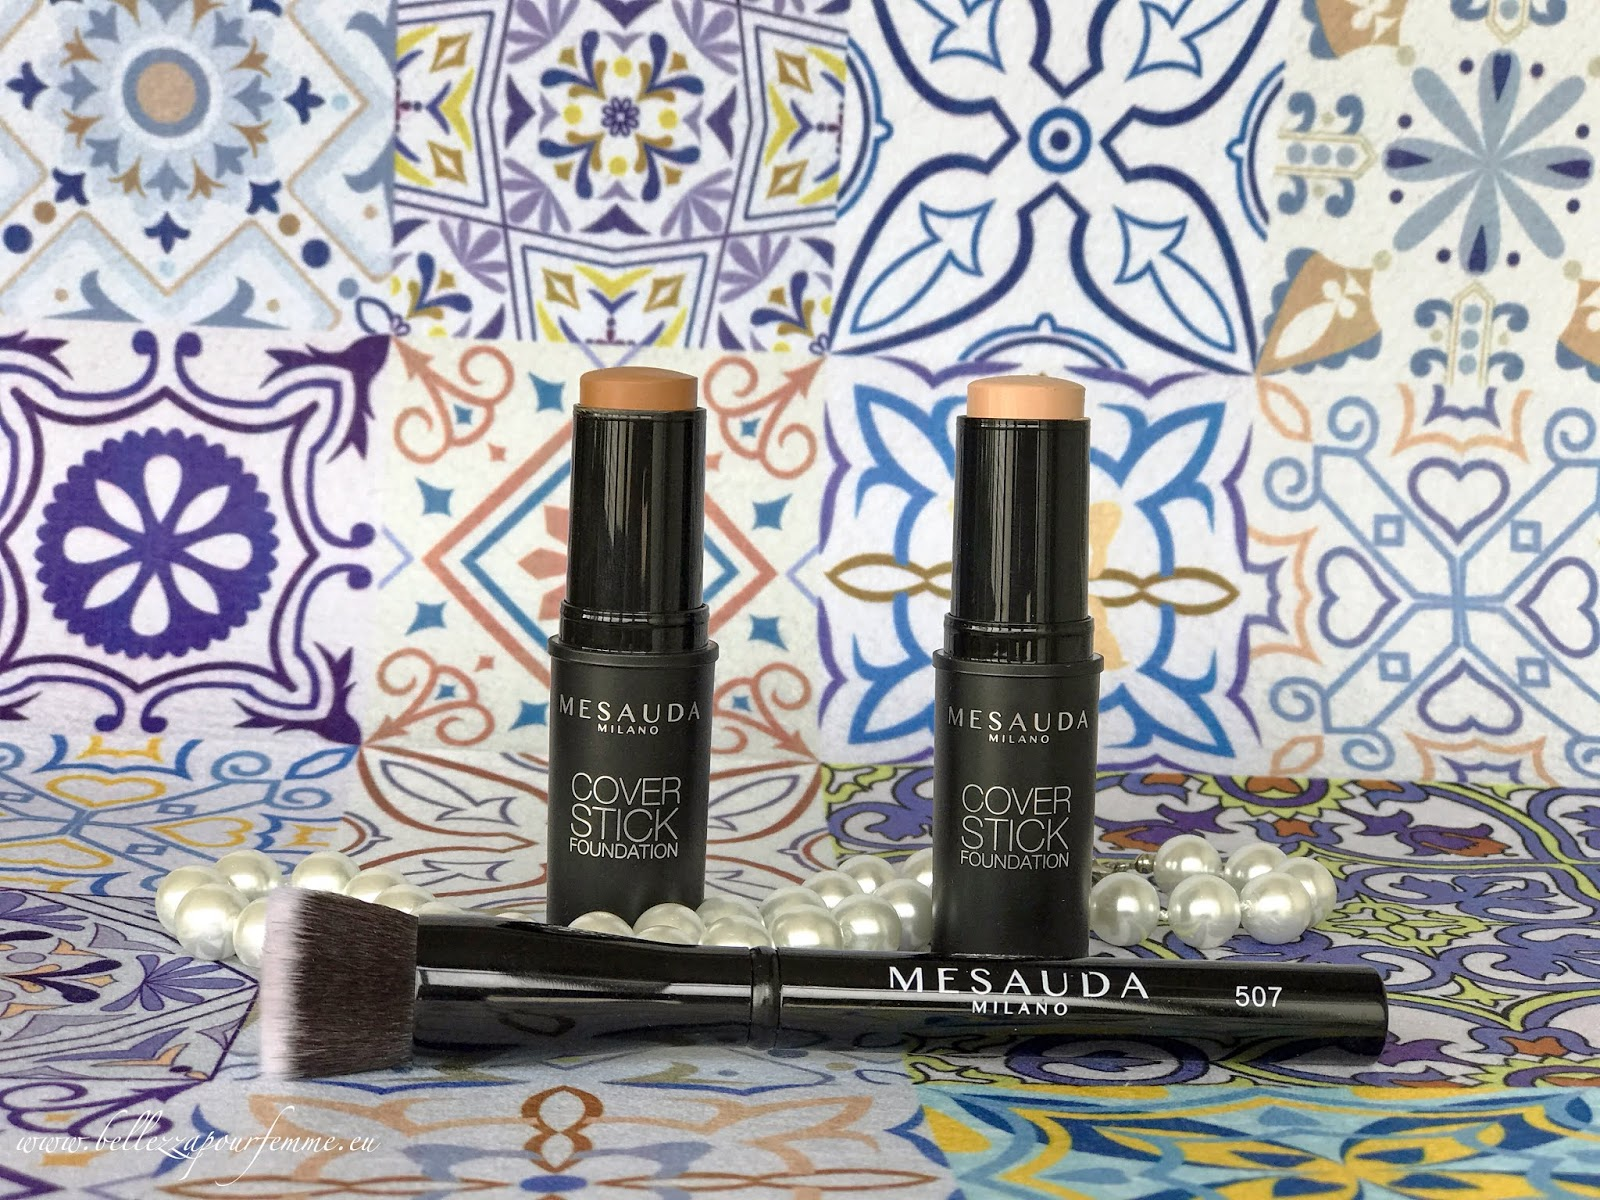 Cover Stick Foundation di Mesauda Milano